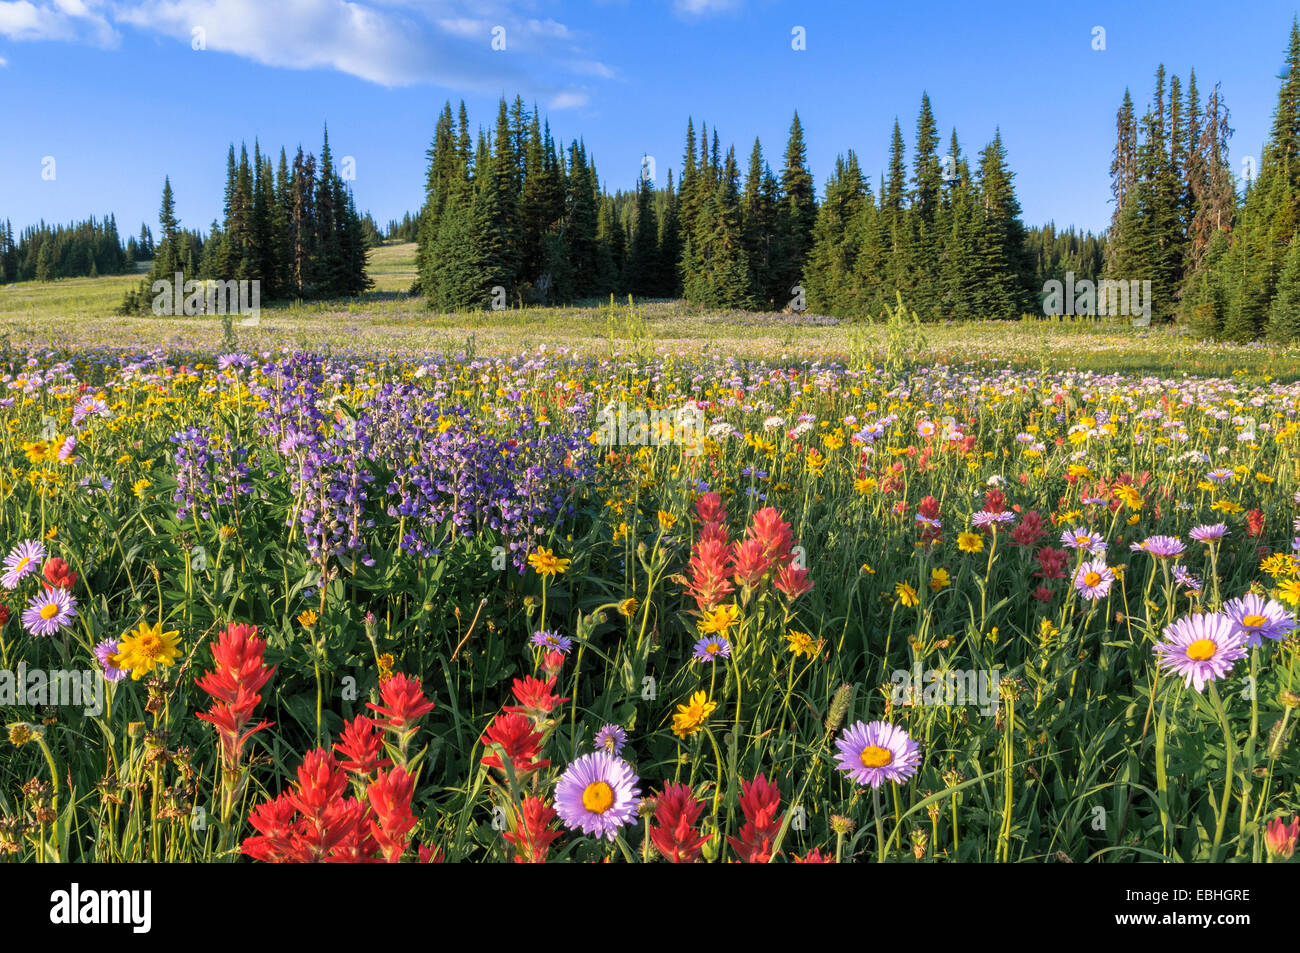 Trophy meadows, Wells Gray Provincial Park, British Columbia, Canada - Stock Image